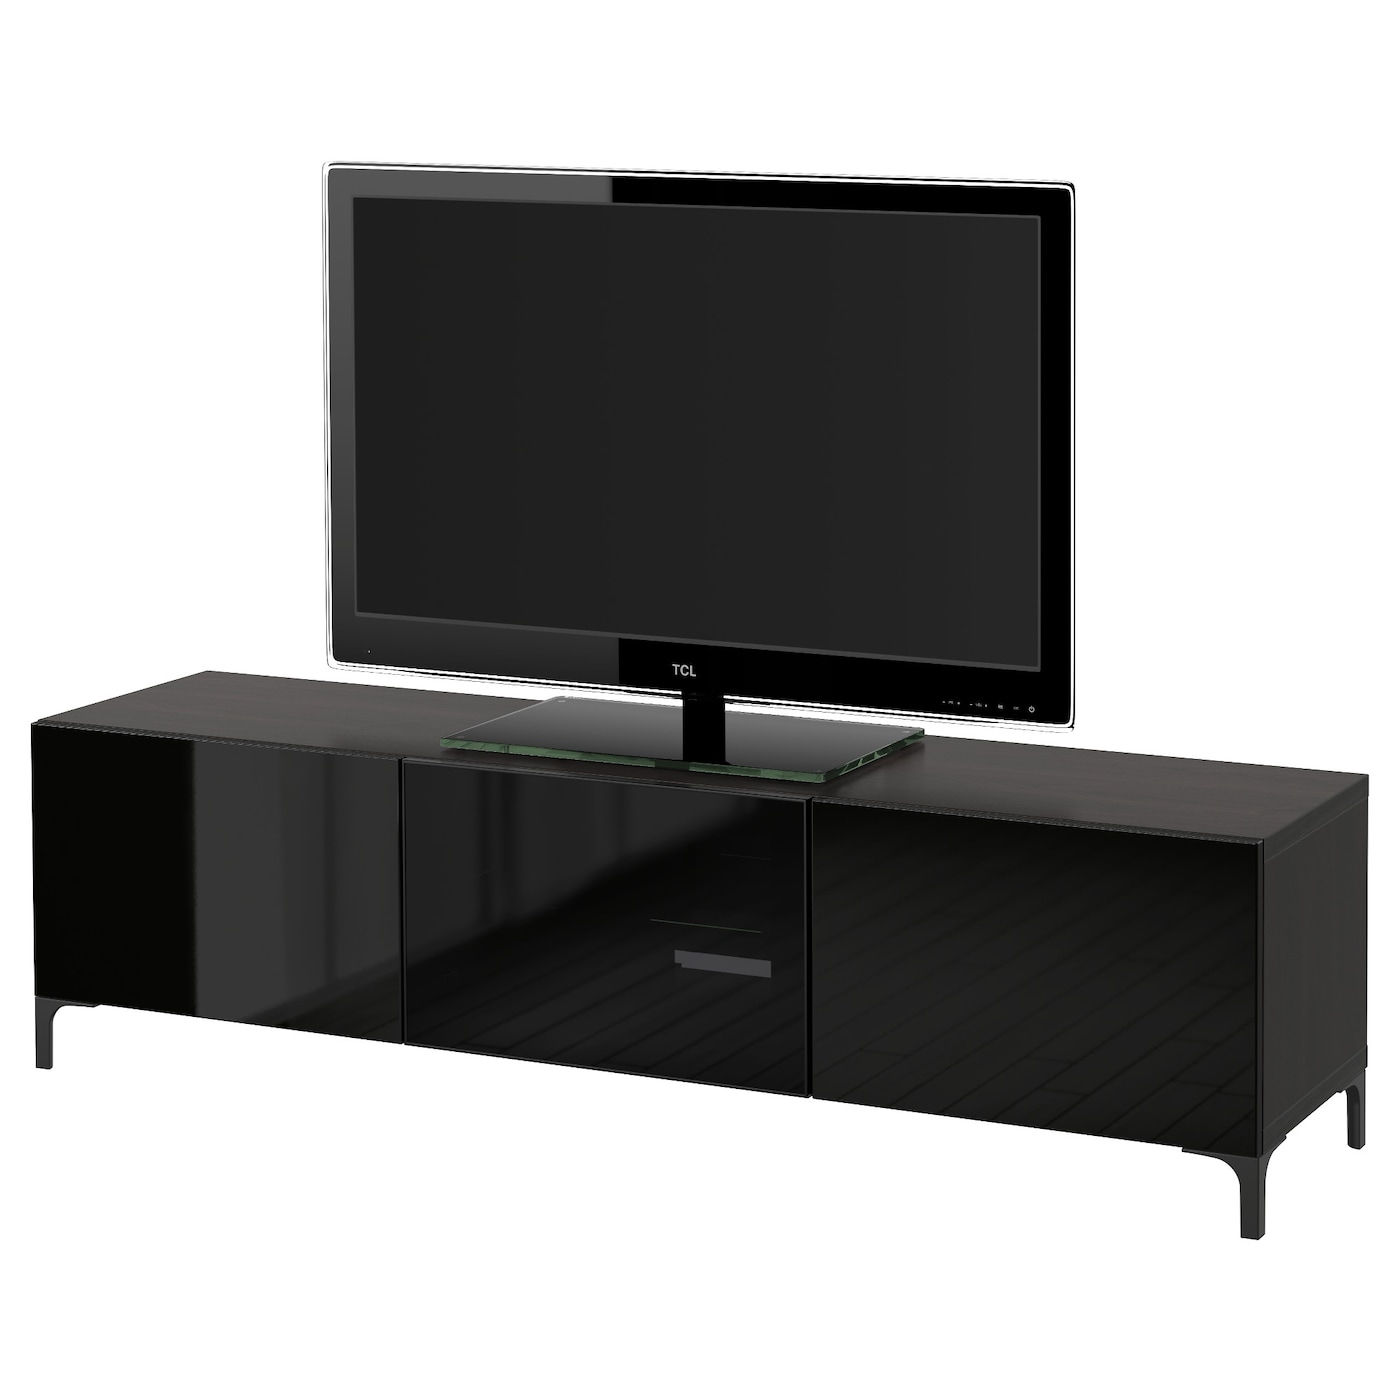 best tv bench with drawers and door black brown selsviken high gloss black smoked glass. Black Bedroom Furniture Sets. Home Design Ideas